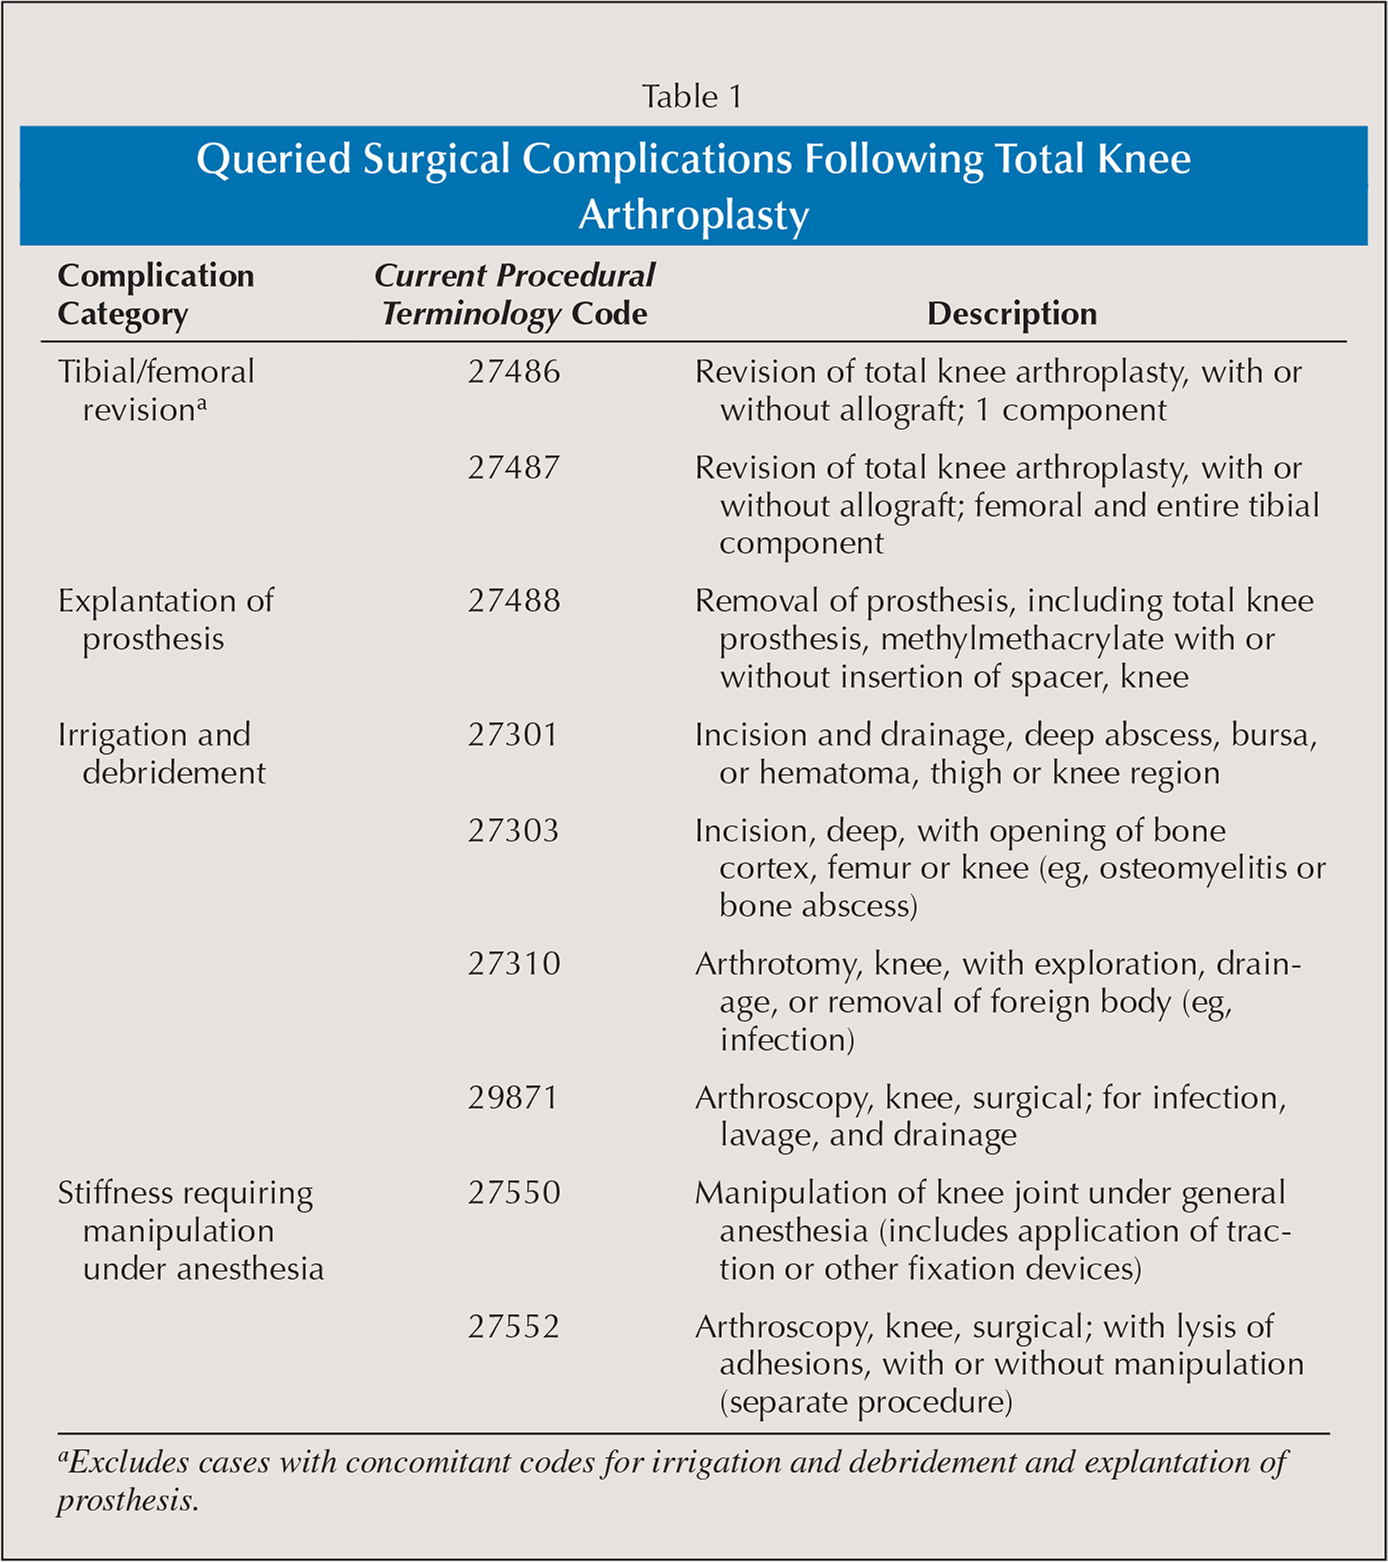 Queried Surgical Complications Following Total Knee Arthroplasty